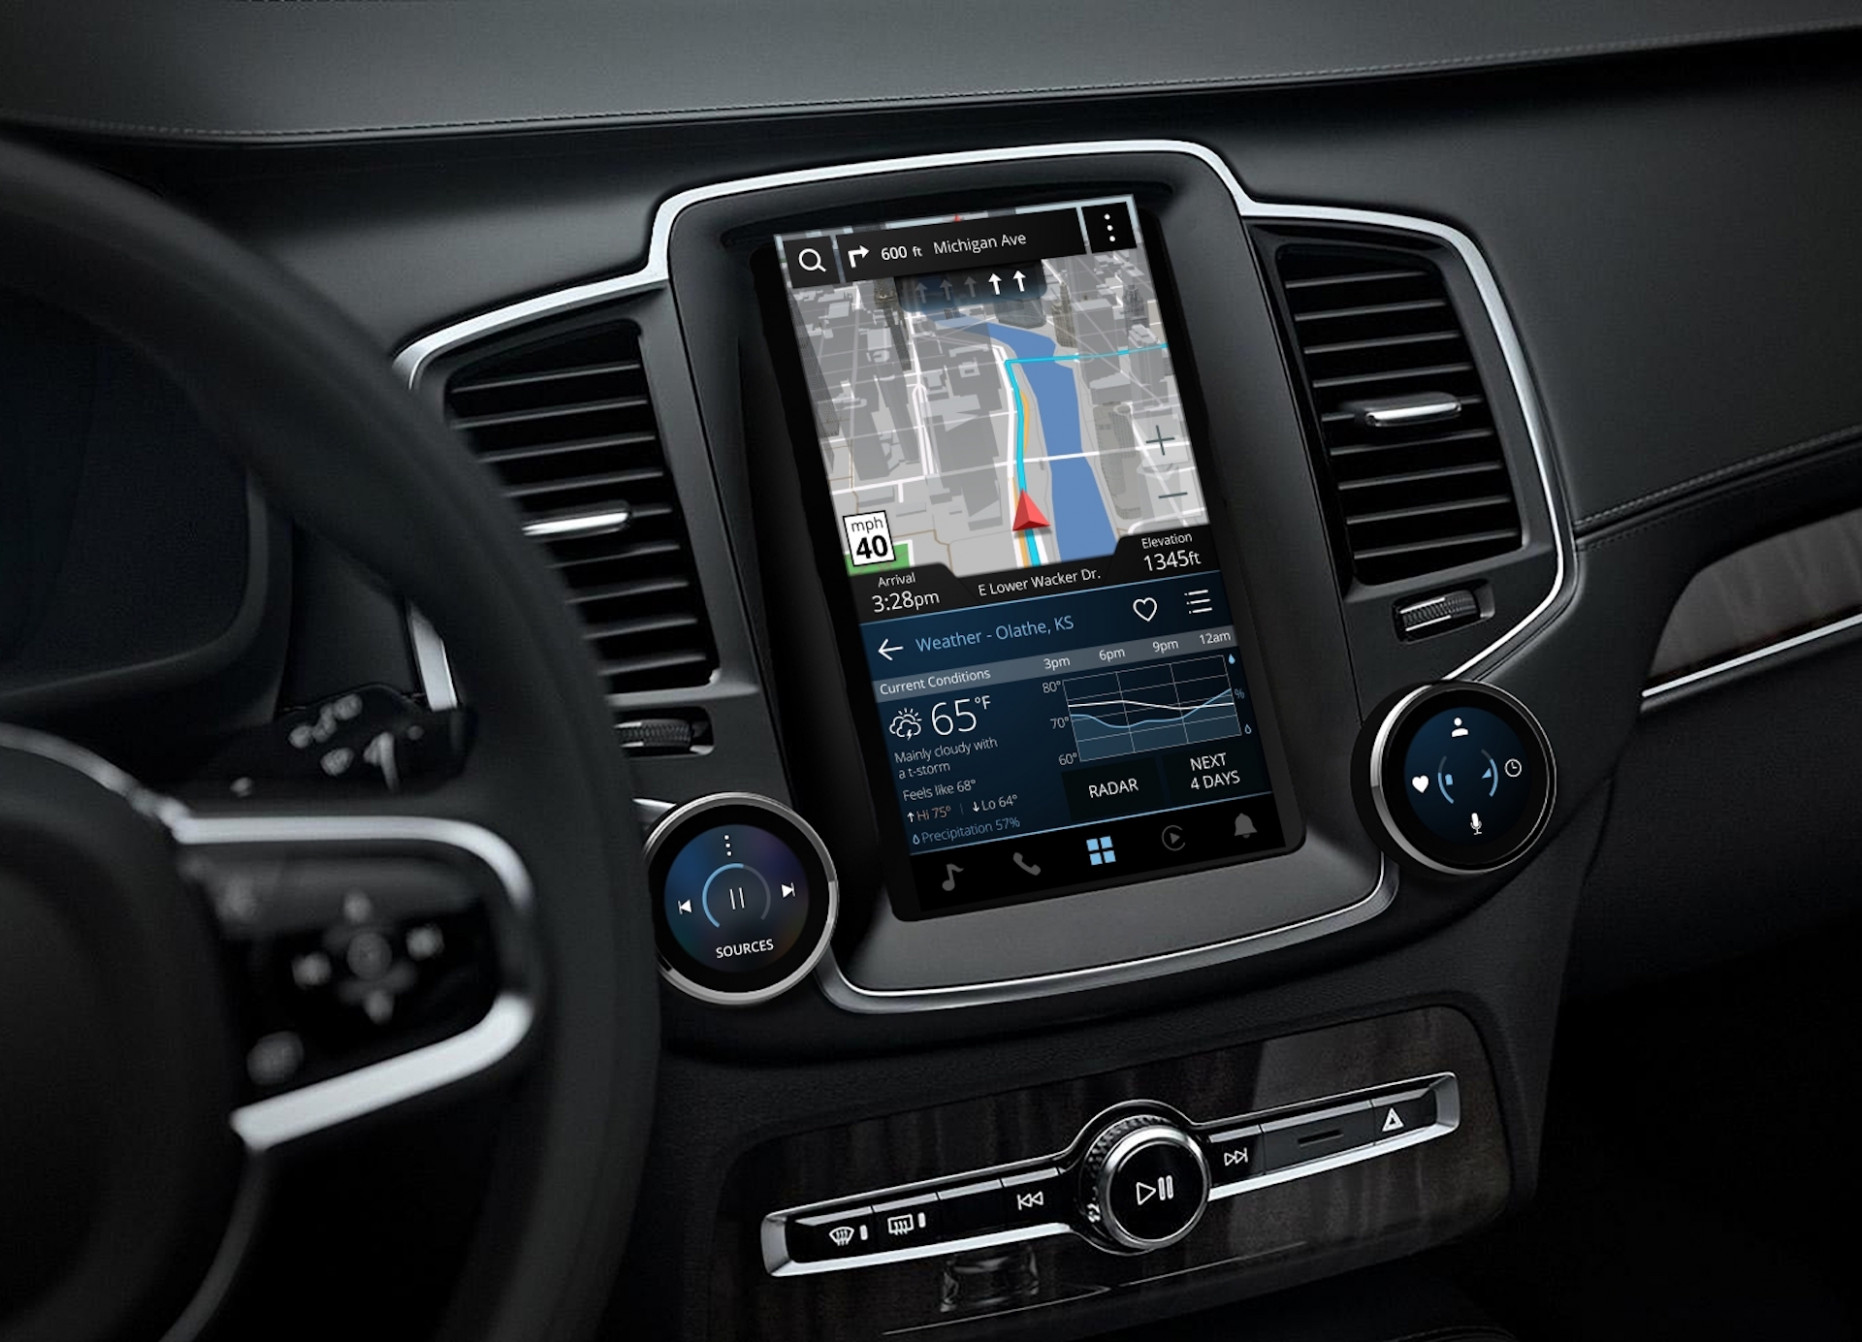 Did Garmin just reveal the 11 Volvo S11/V11 interior? - volvo s60 2020 interior